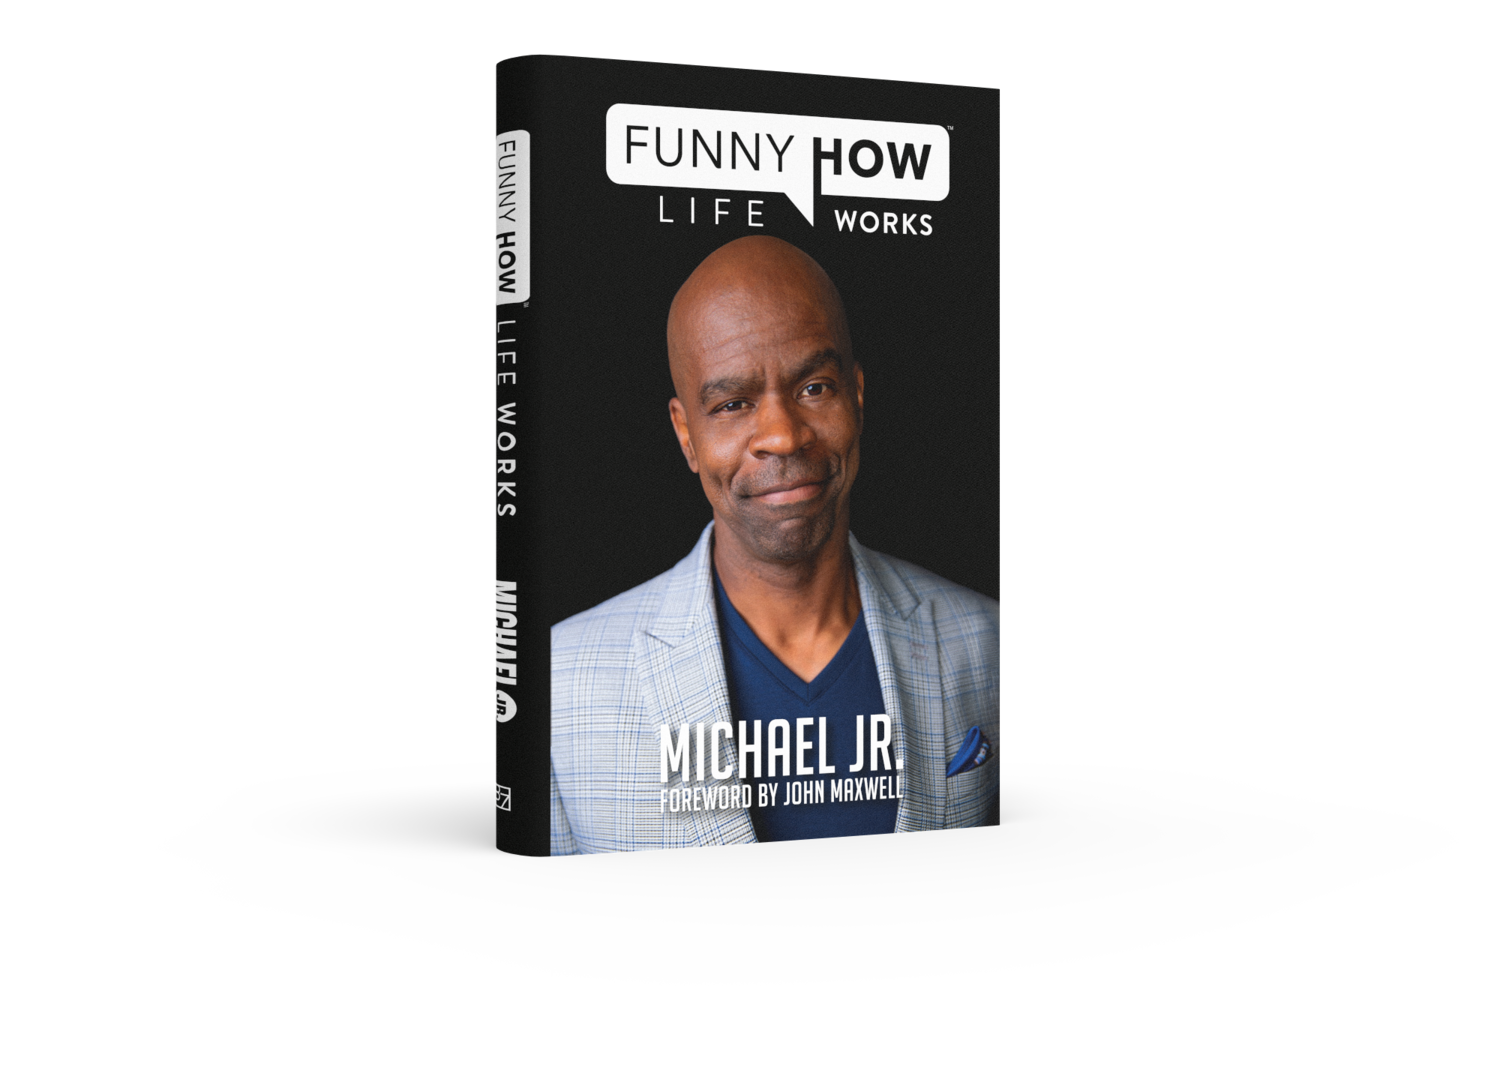 """Michael Jr Shares Lessons He's Learned and Transformative Stories He's Experienced in His Life in New Book """"Funny How Life Works"""""""